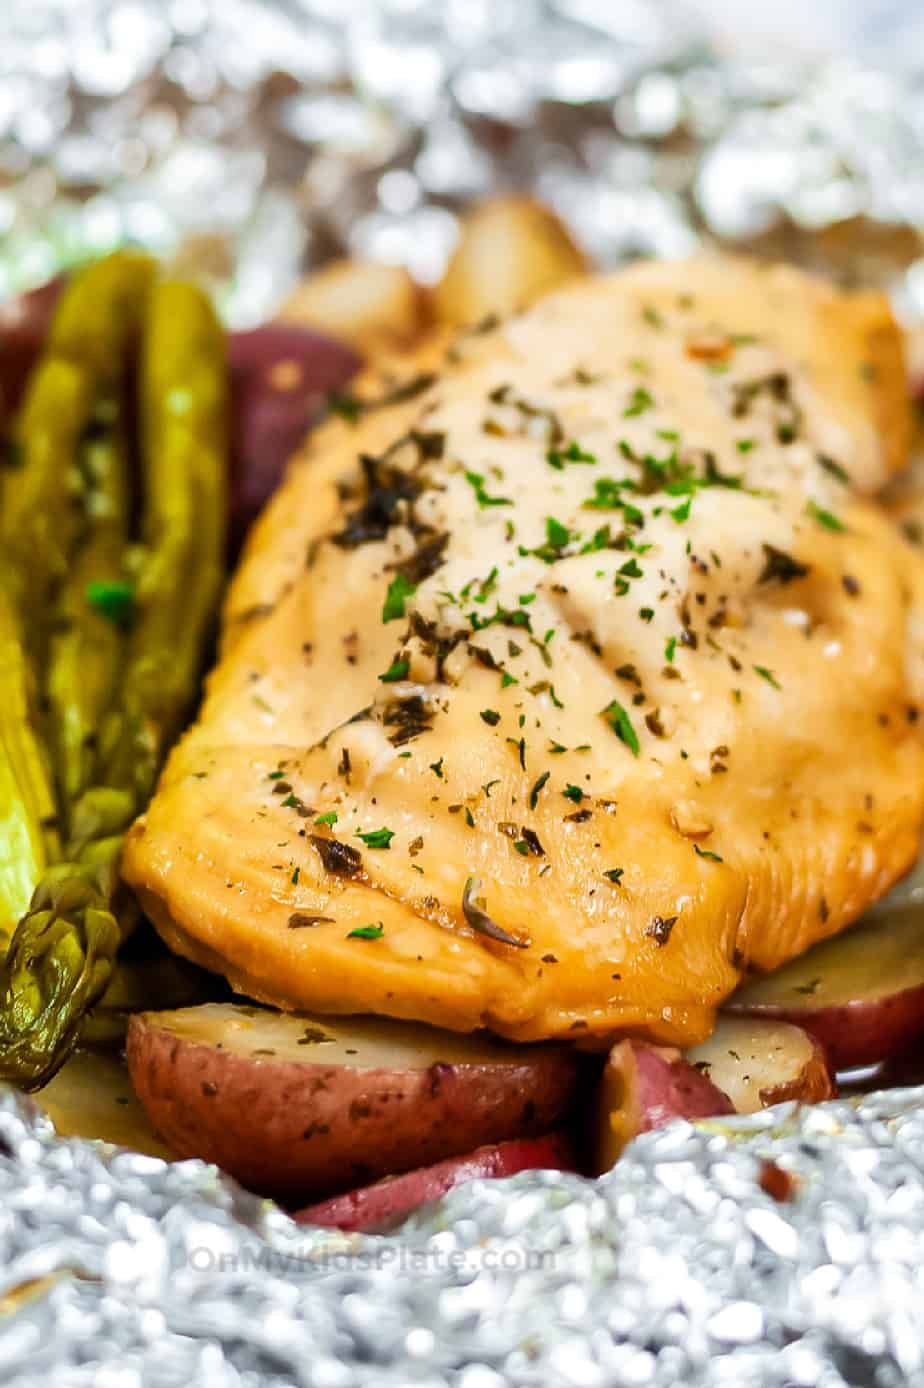 Close up of cooked chicken, asparagus and potatoes in a foil packet from the side.